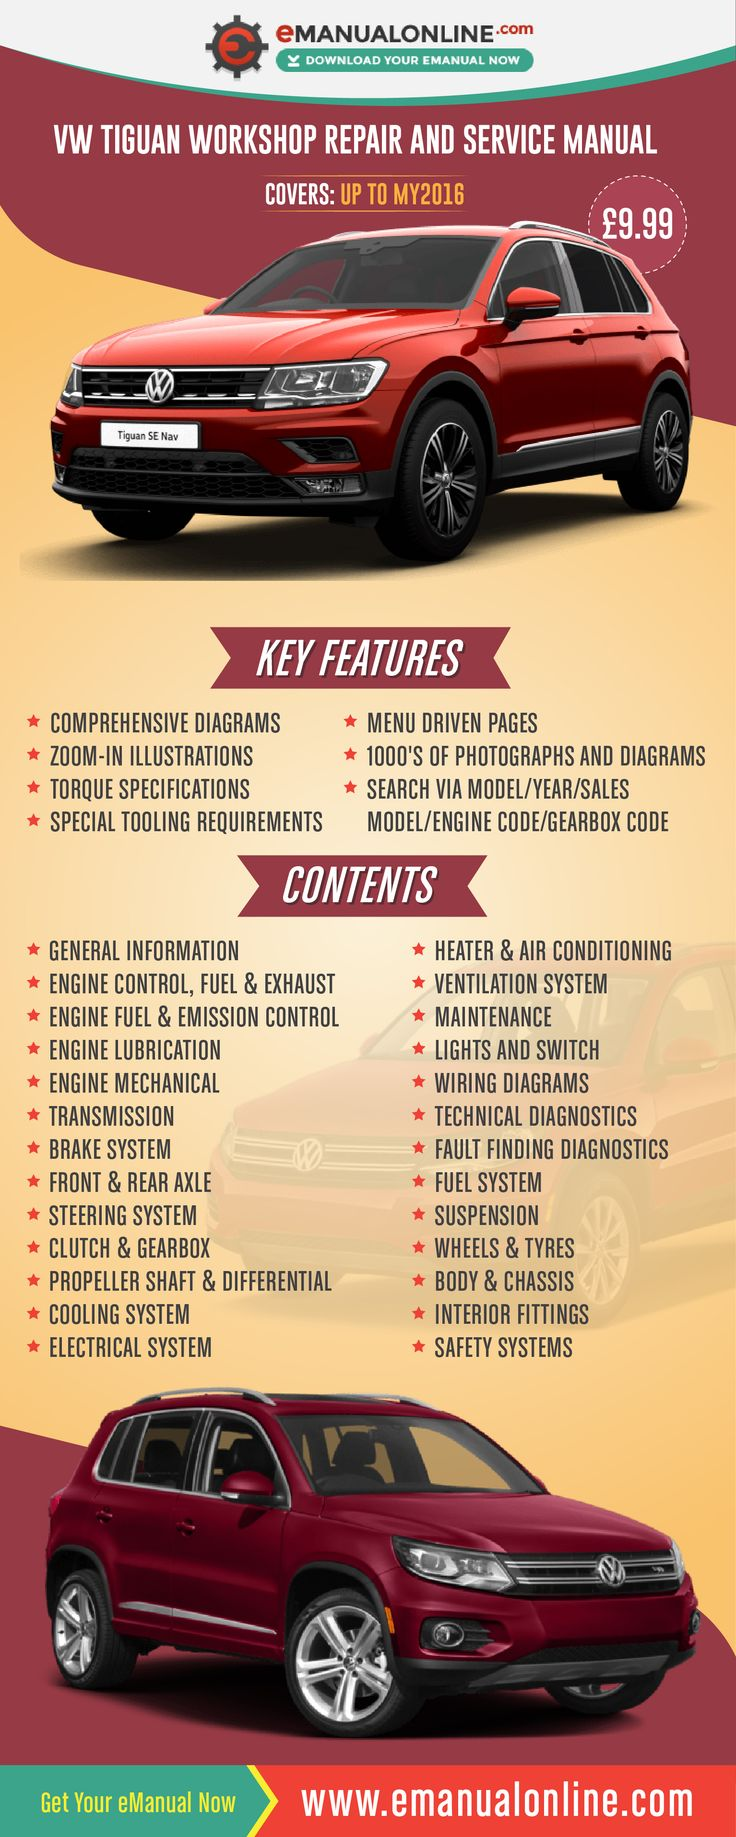 VW Tiguan Workshop Repair And Service Manual  This simple to use menu driven repair manual offers all the main functions seen below to service or repair your car, including Strict Maintenance Operations using a step by step process.